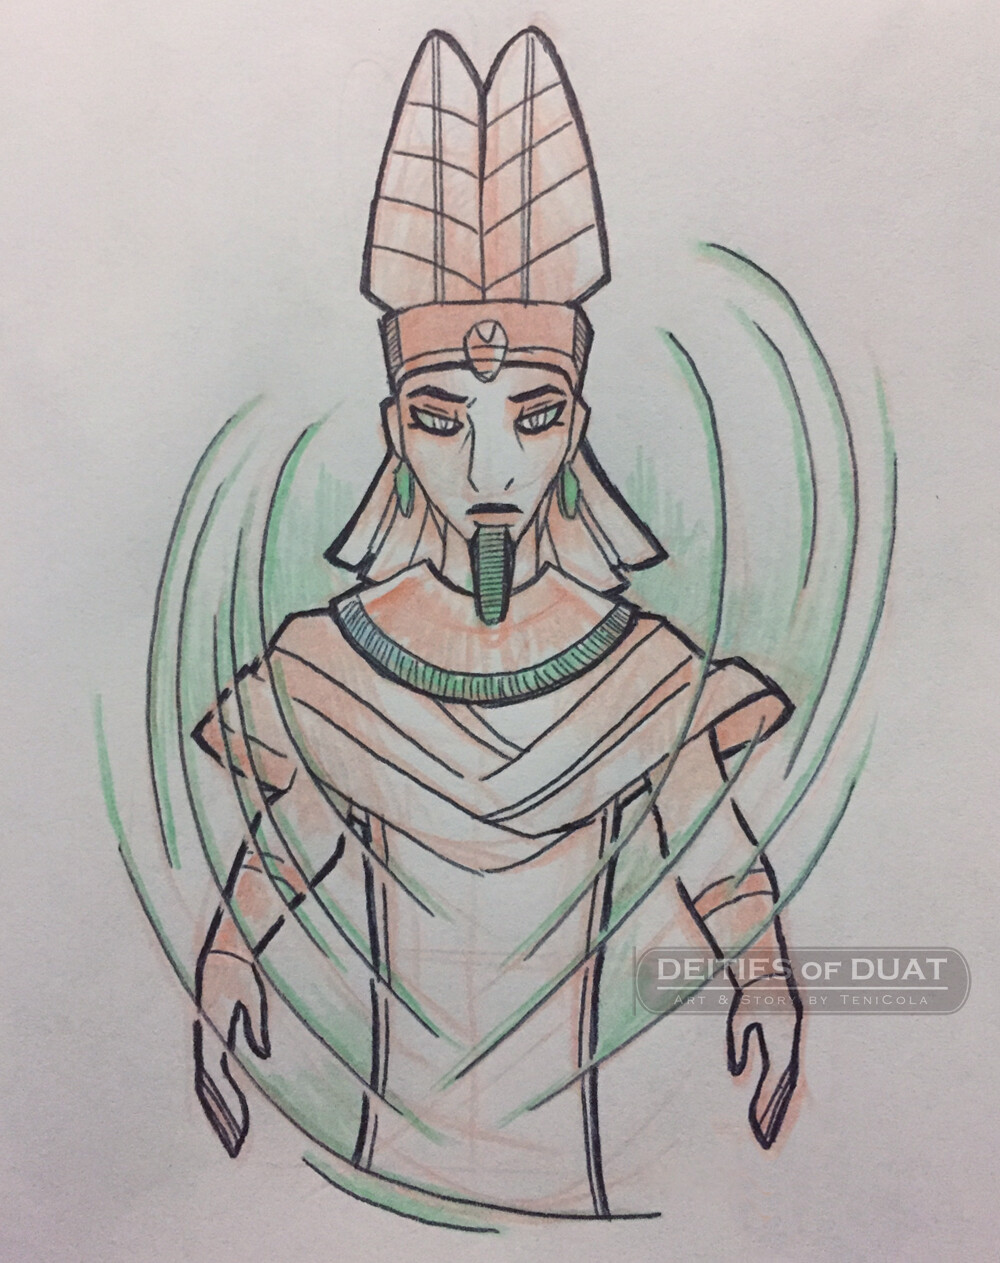 AMUN / AMAUNET -- The Gods of Hiddeness and Invisibility, and part of the Ogdoad deities.